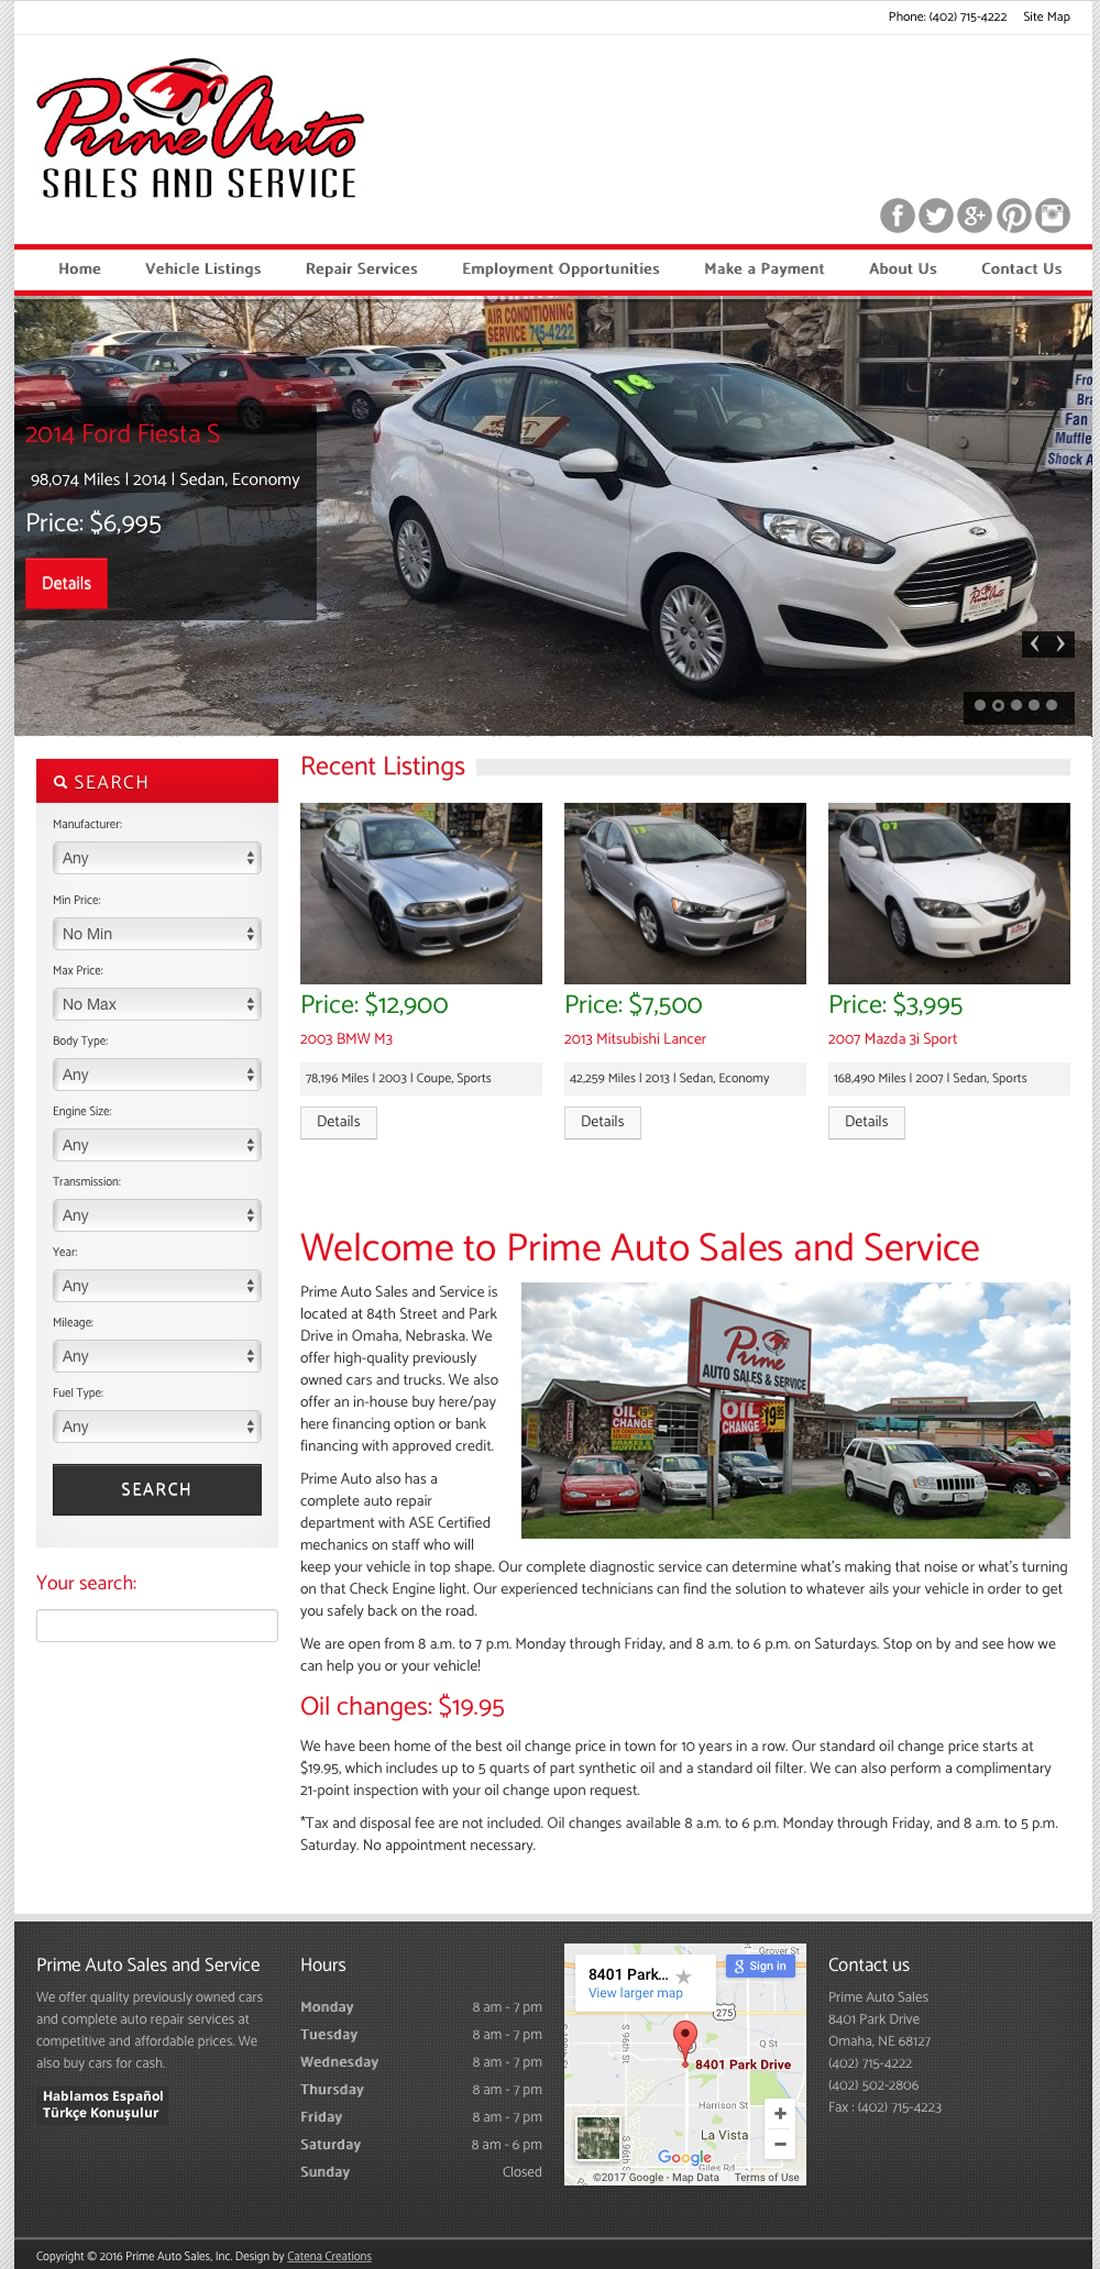 Prime Auto Sales website by Catena Creations